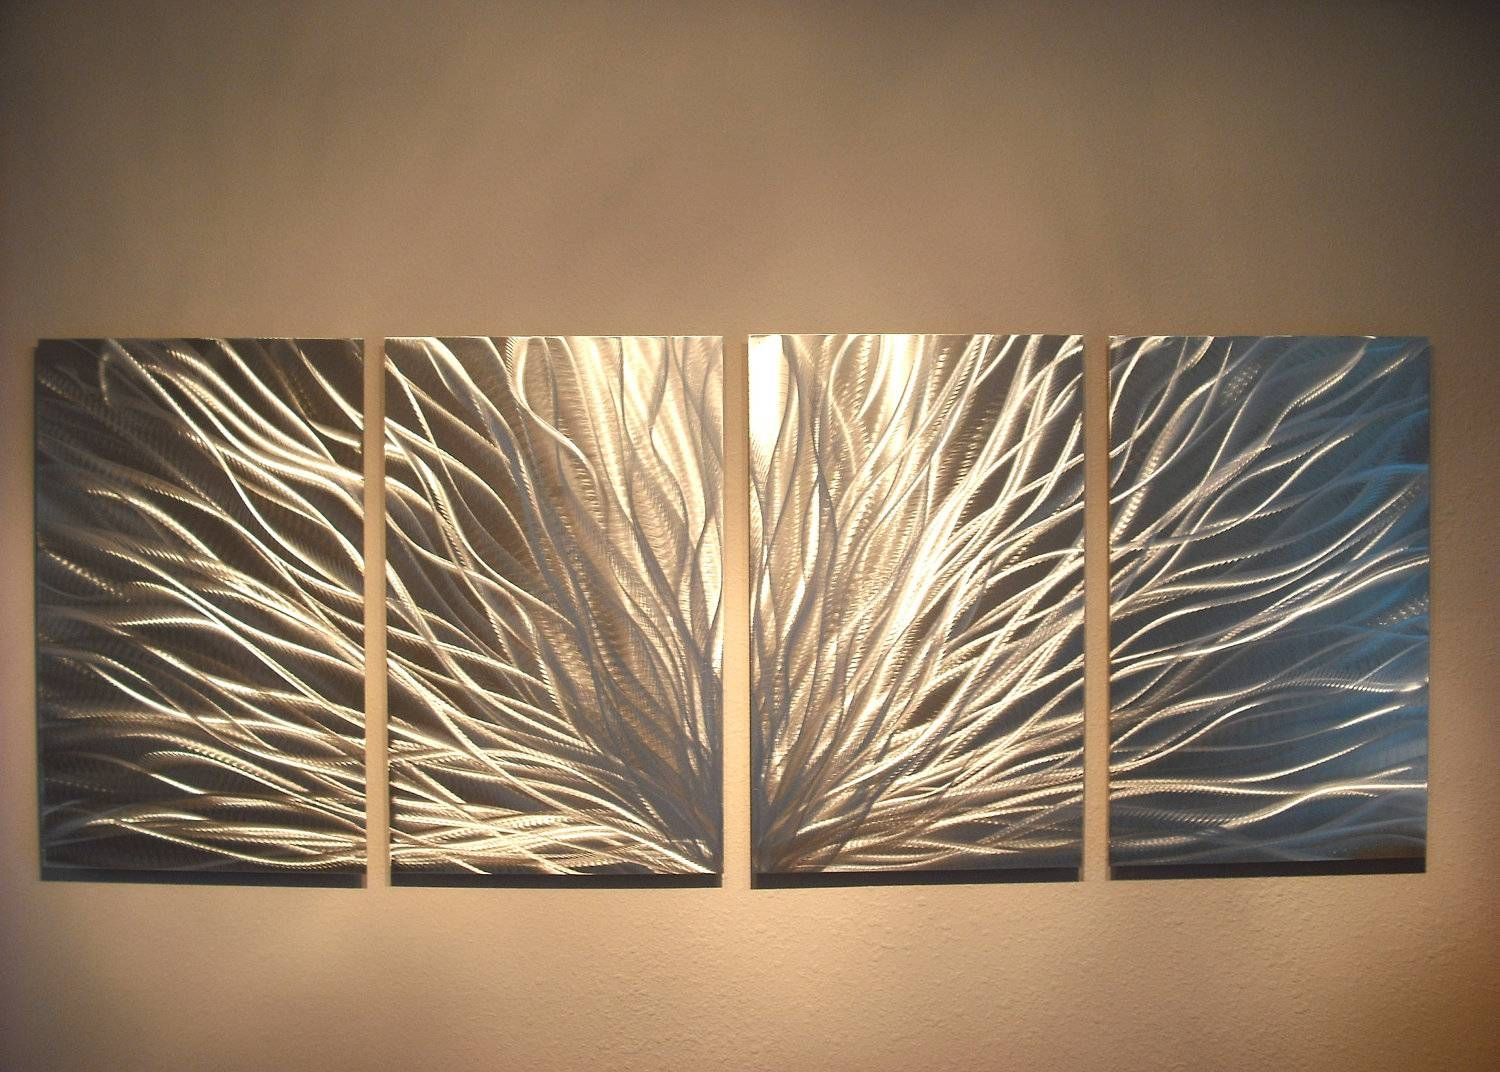 3 Kitchen Wall Art Ideas Without Investing Too Much Of Your Time For Recent Metal Wall Art For Kitchen (View 18 of 20)